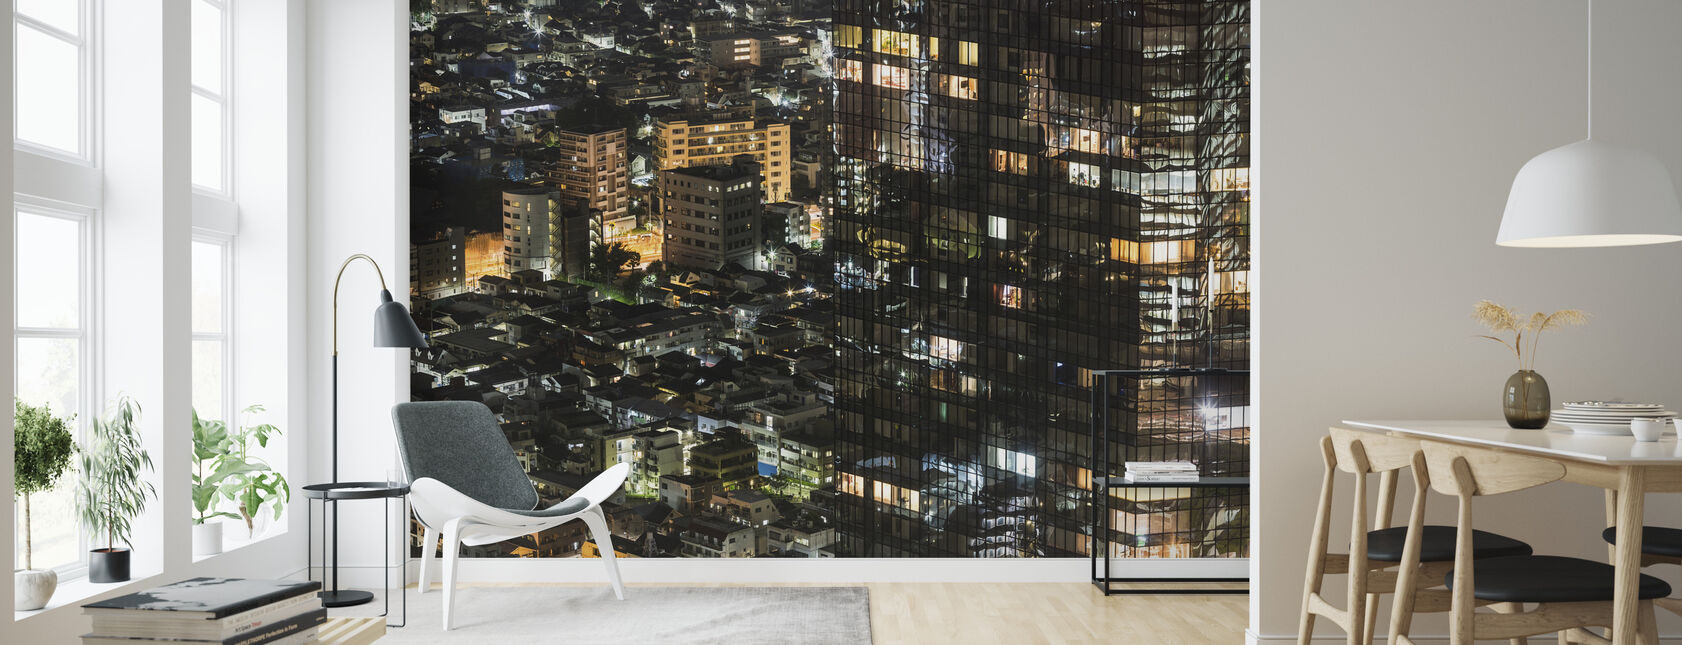 Skyscraper Merges with Residential Housing in Shinjuku - Wallpaper - Living Room